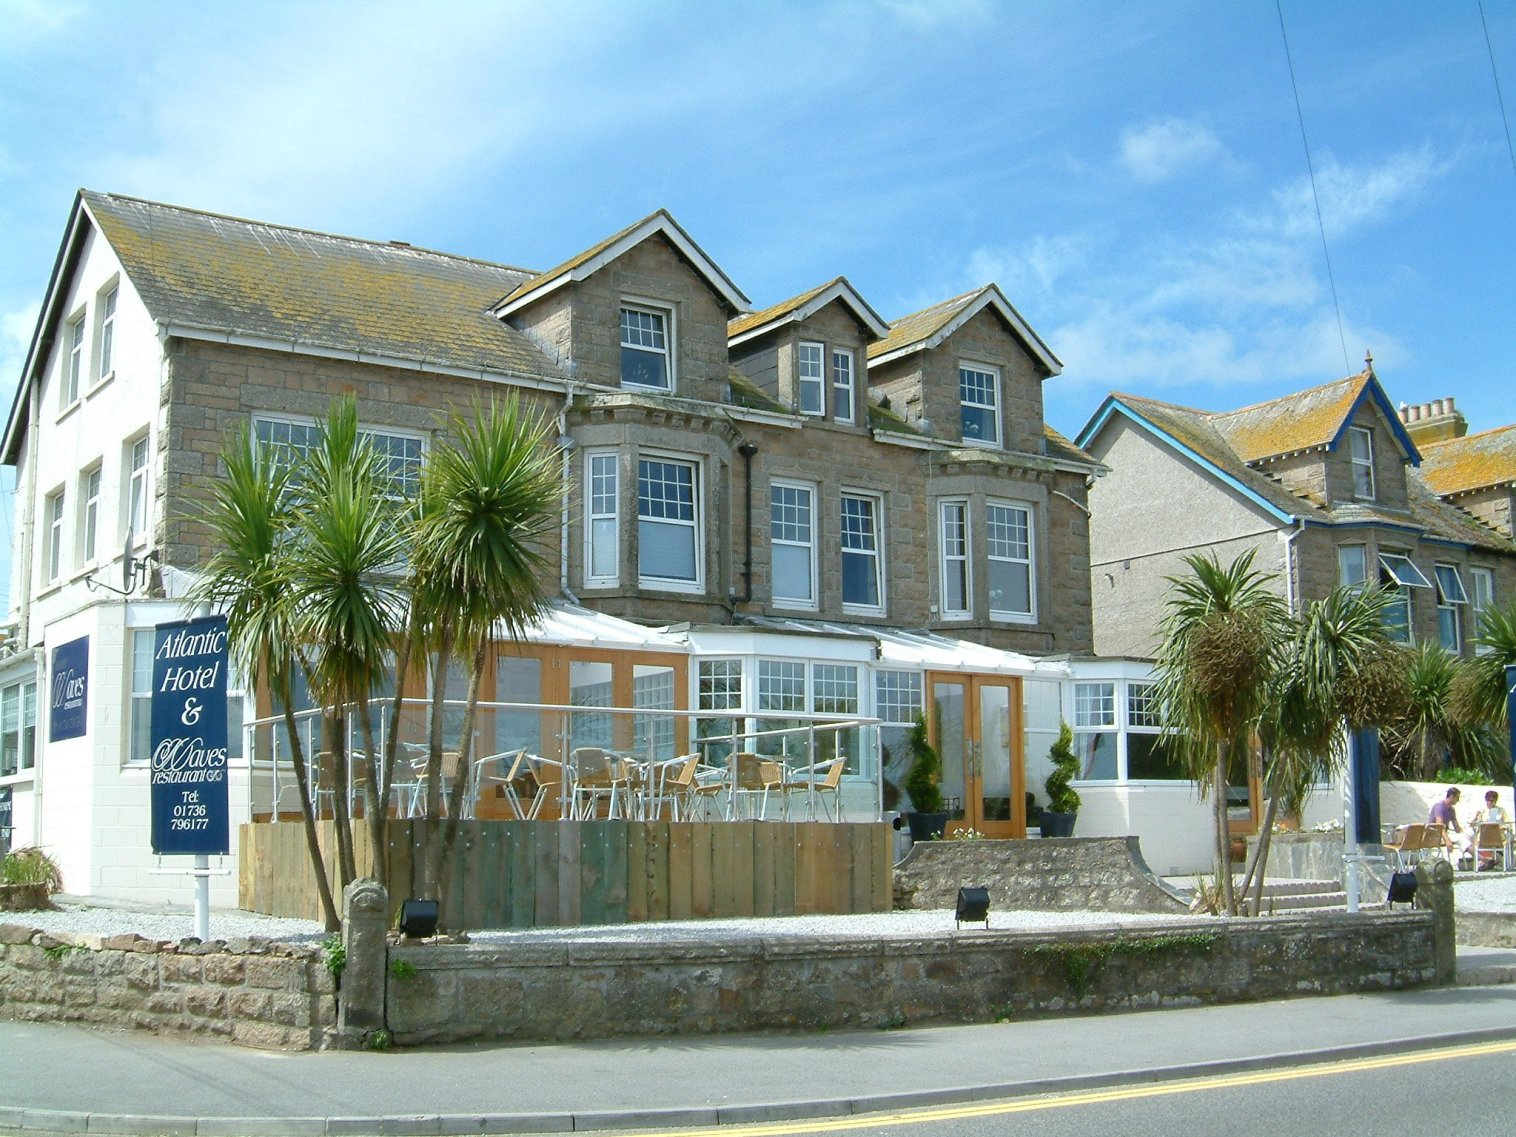 St ives hotels cheap hotel bookings for 1 atlantic terrace st ives